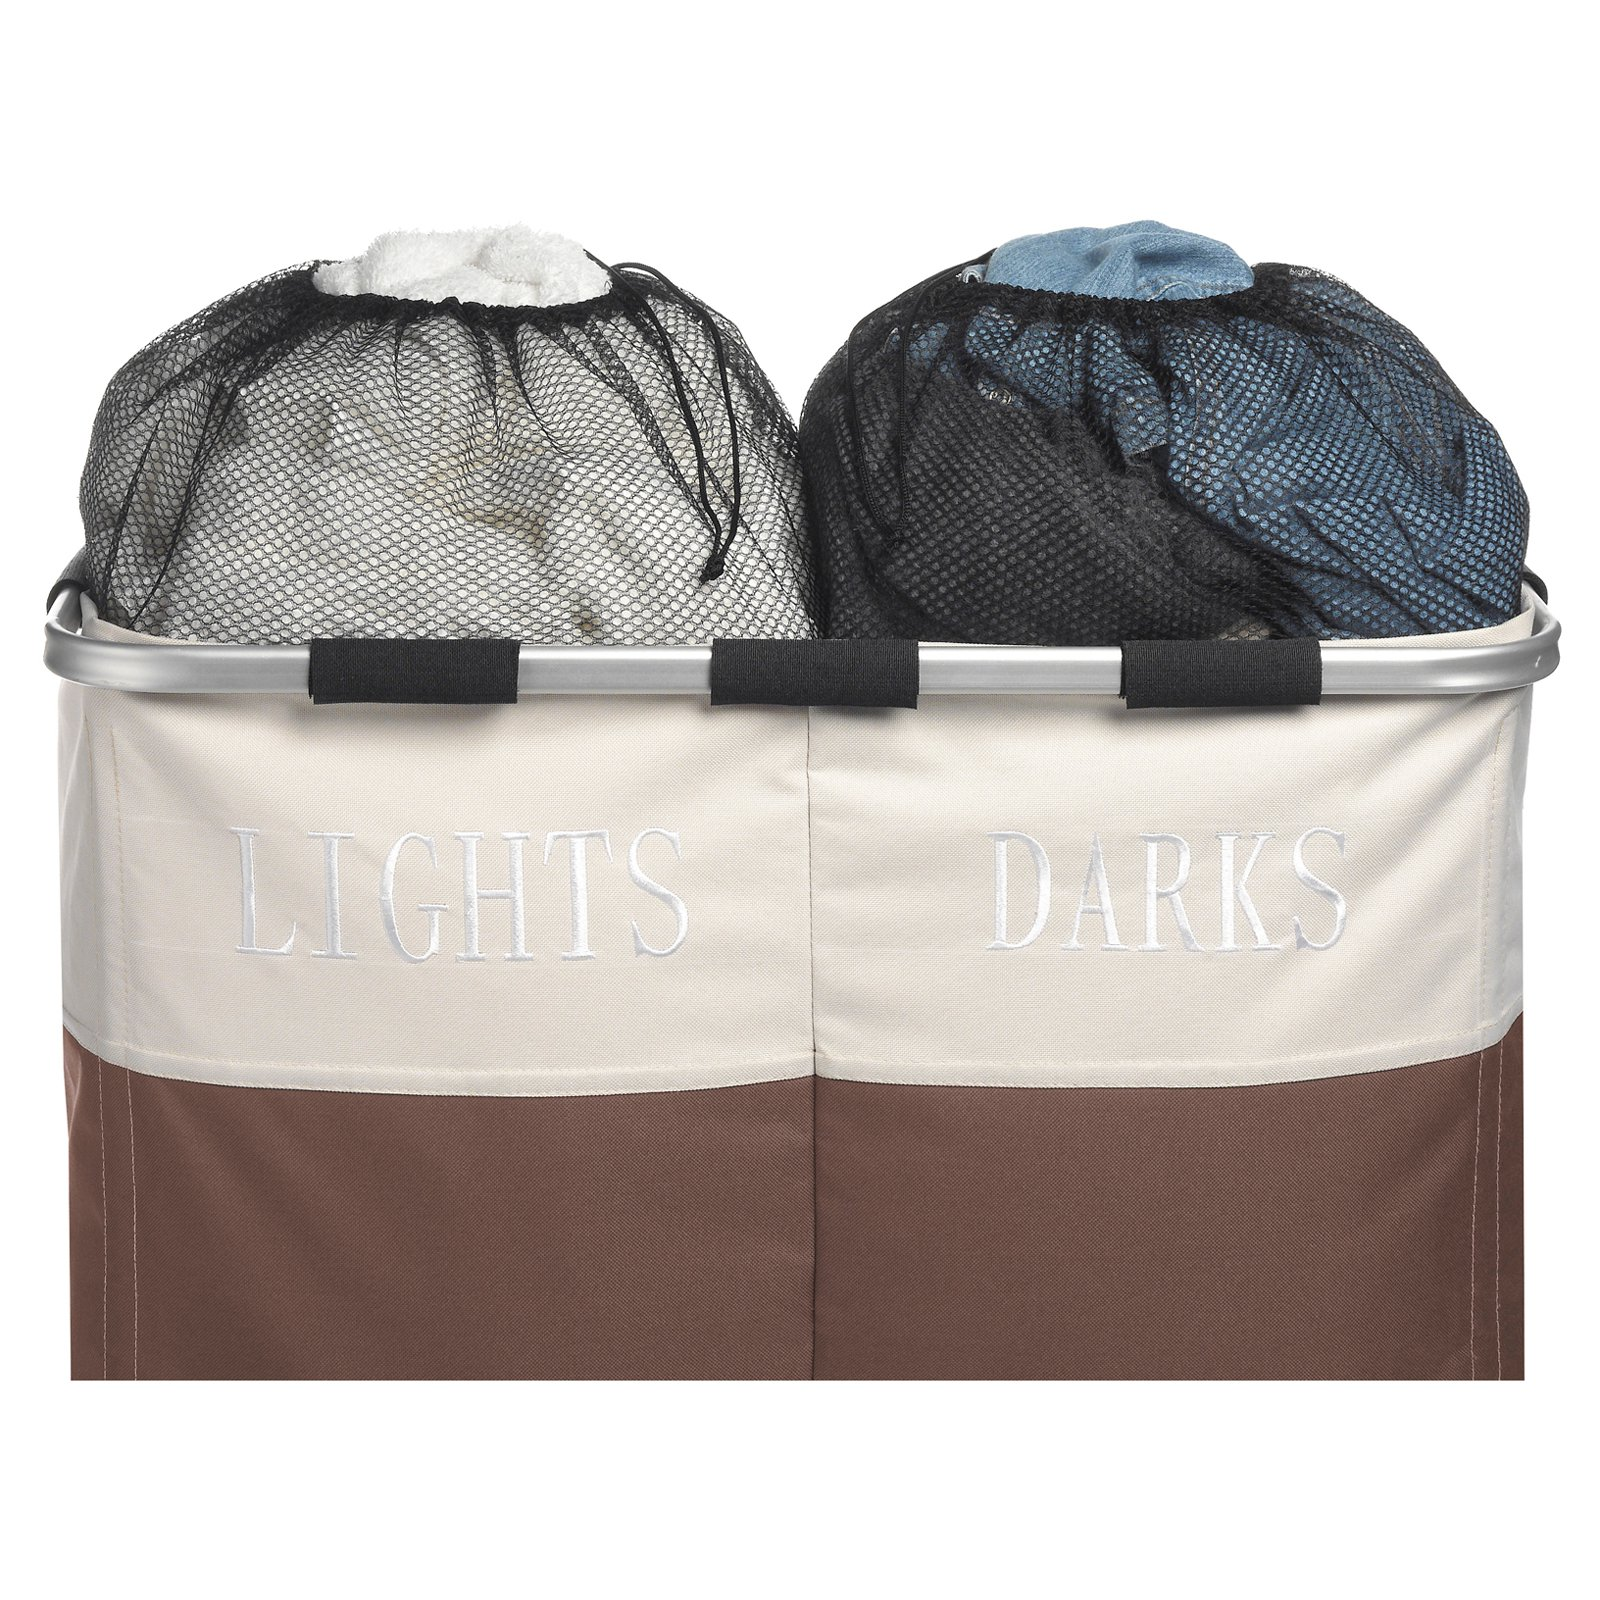 Whitmor Easycare Double Hamper Java